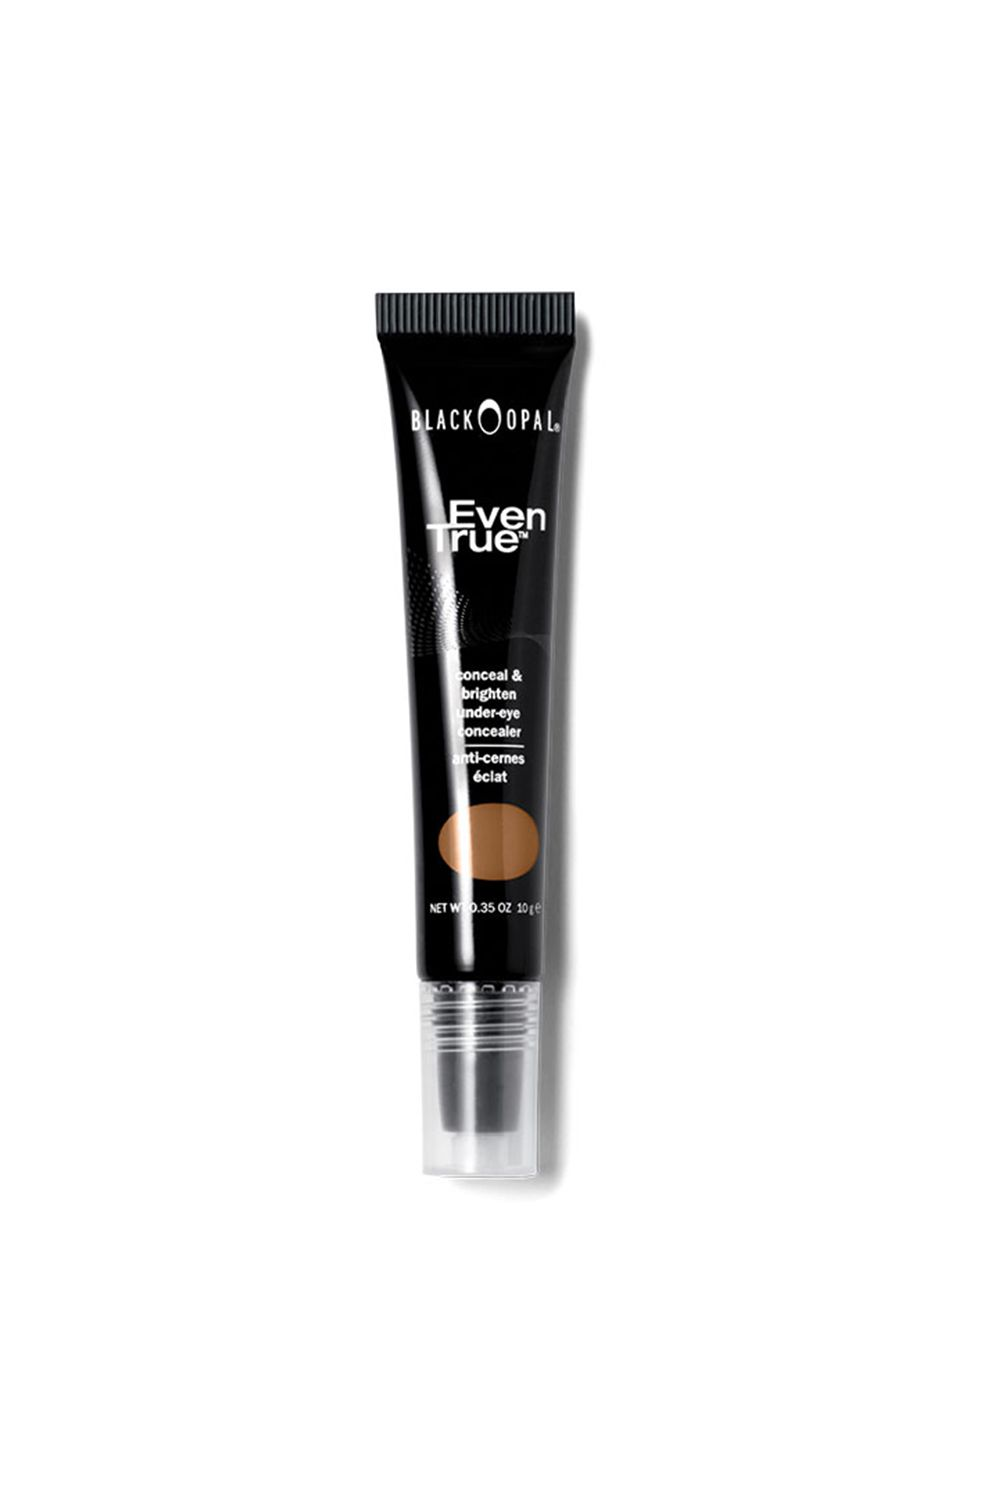 "<p>This light-reflecting concealer has a rollerball applicator, helping it glide over your under-eyes without tugging or pulling. And don't worry—tan is just one of the lightest shades.</p><p><i data-redactor-tag=""i"">Black Opal Even True Brightening Under-Eye Concealer in Tan, $8.95</i></p><p><strong data-redactor-tag=""strong"">BUY IT: <a href=""https://www.blackopalbeauty.com/shop/makeup/face/concealers/even-true-brightening-under-eye-concealer"">blackopalbeauty.com</a>.</strong></p>"